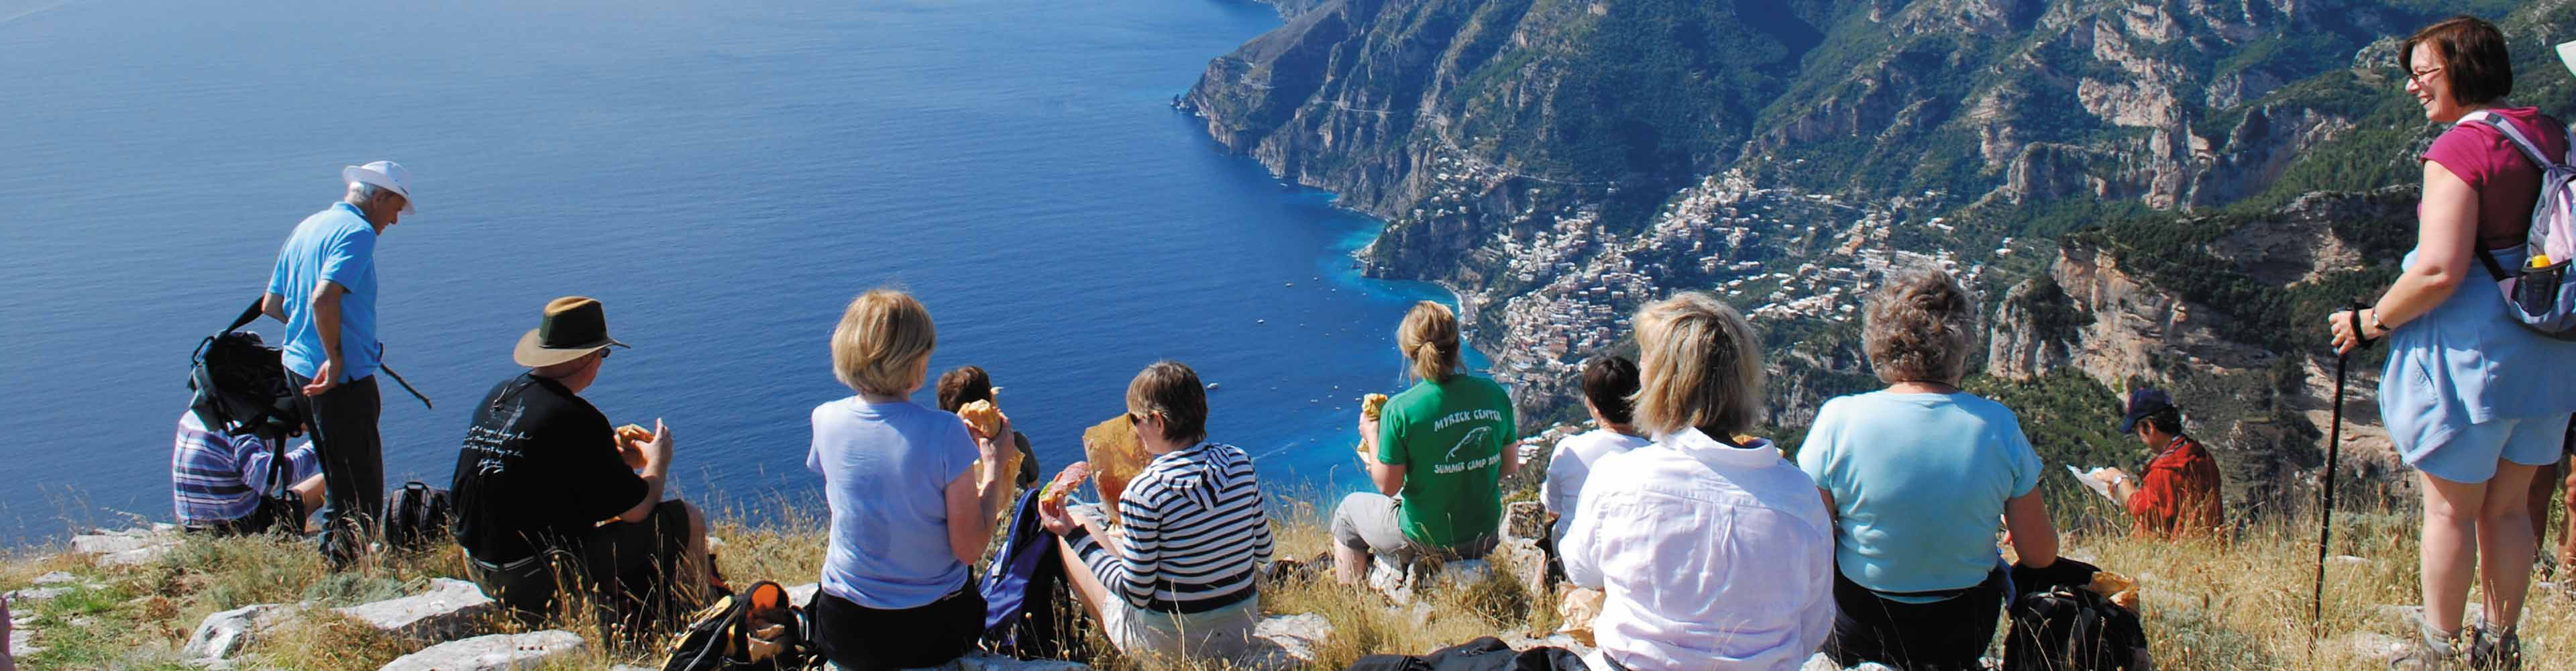 Walking in Italy: The Amalfi Coast